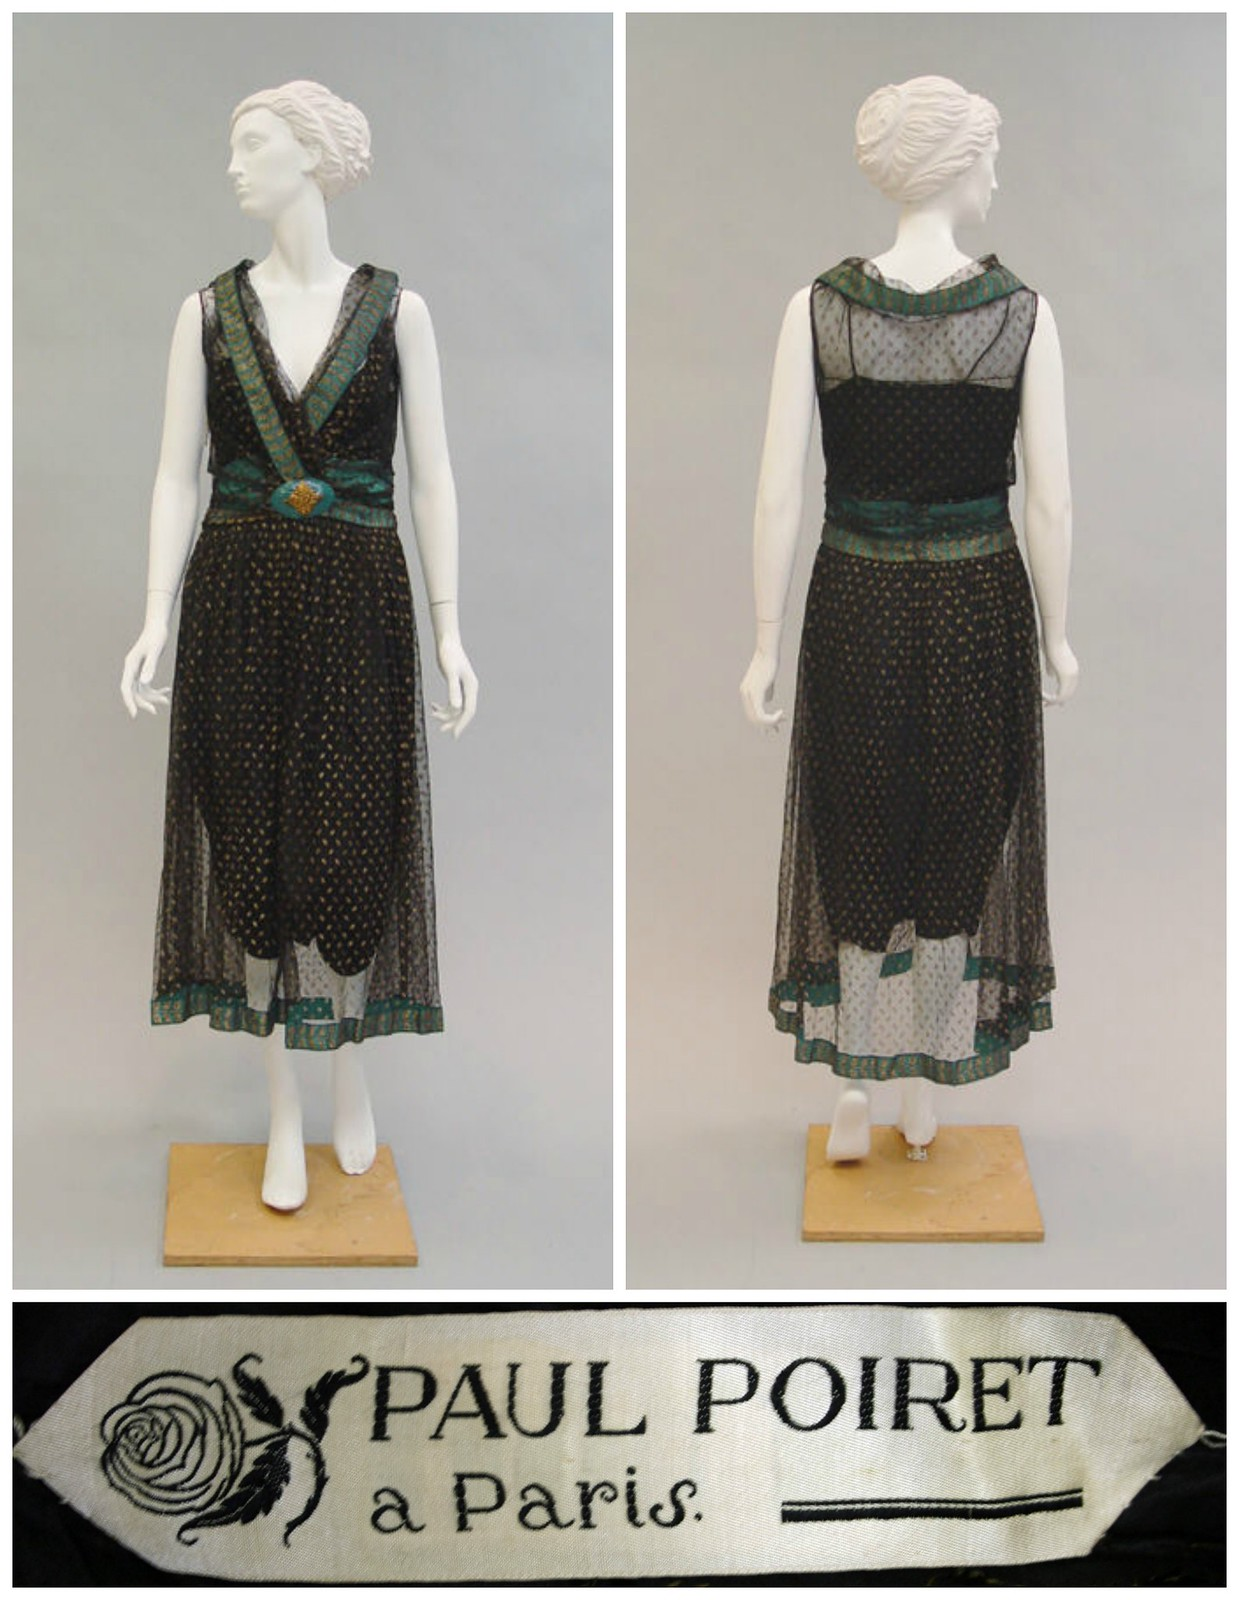 1927 Evening Dress. Paul Poiret. Silk, metal, plastic